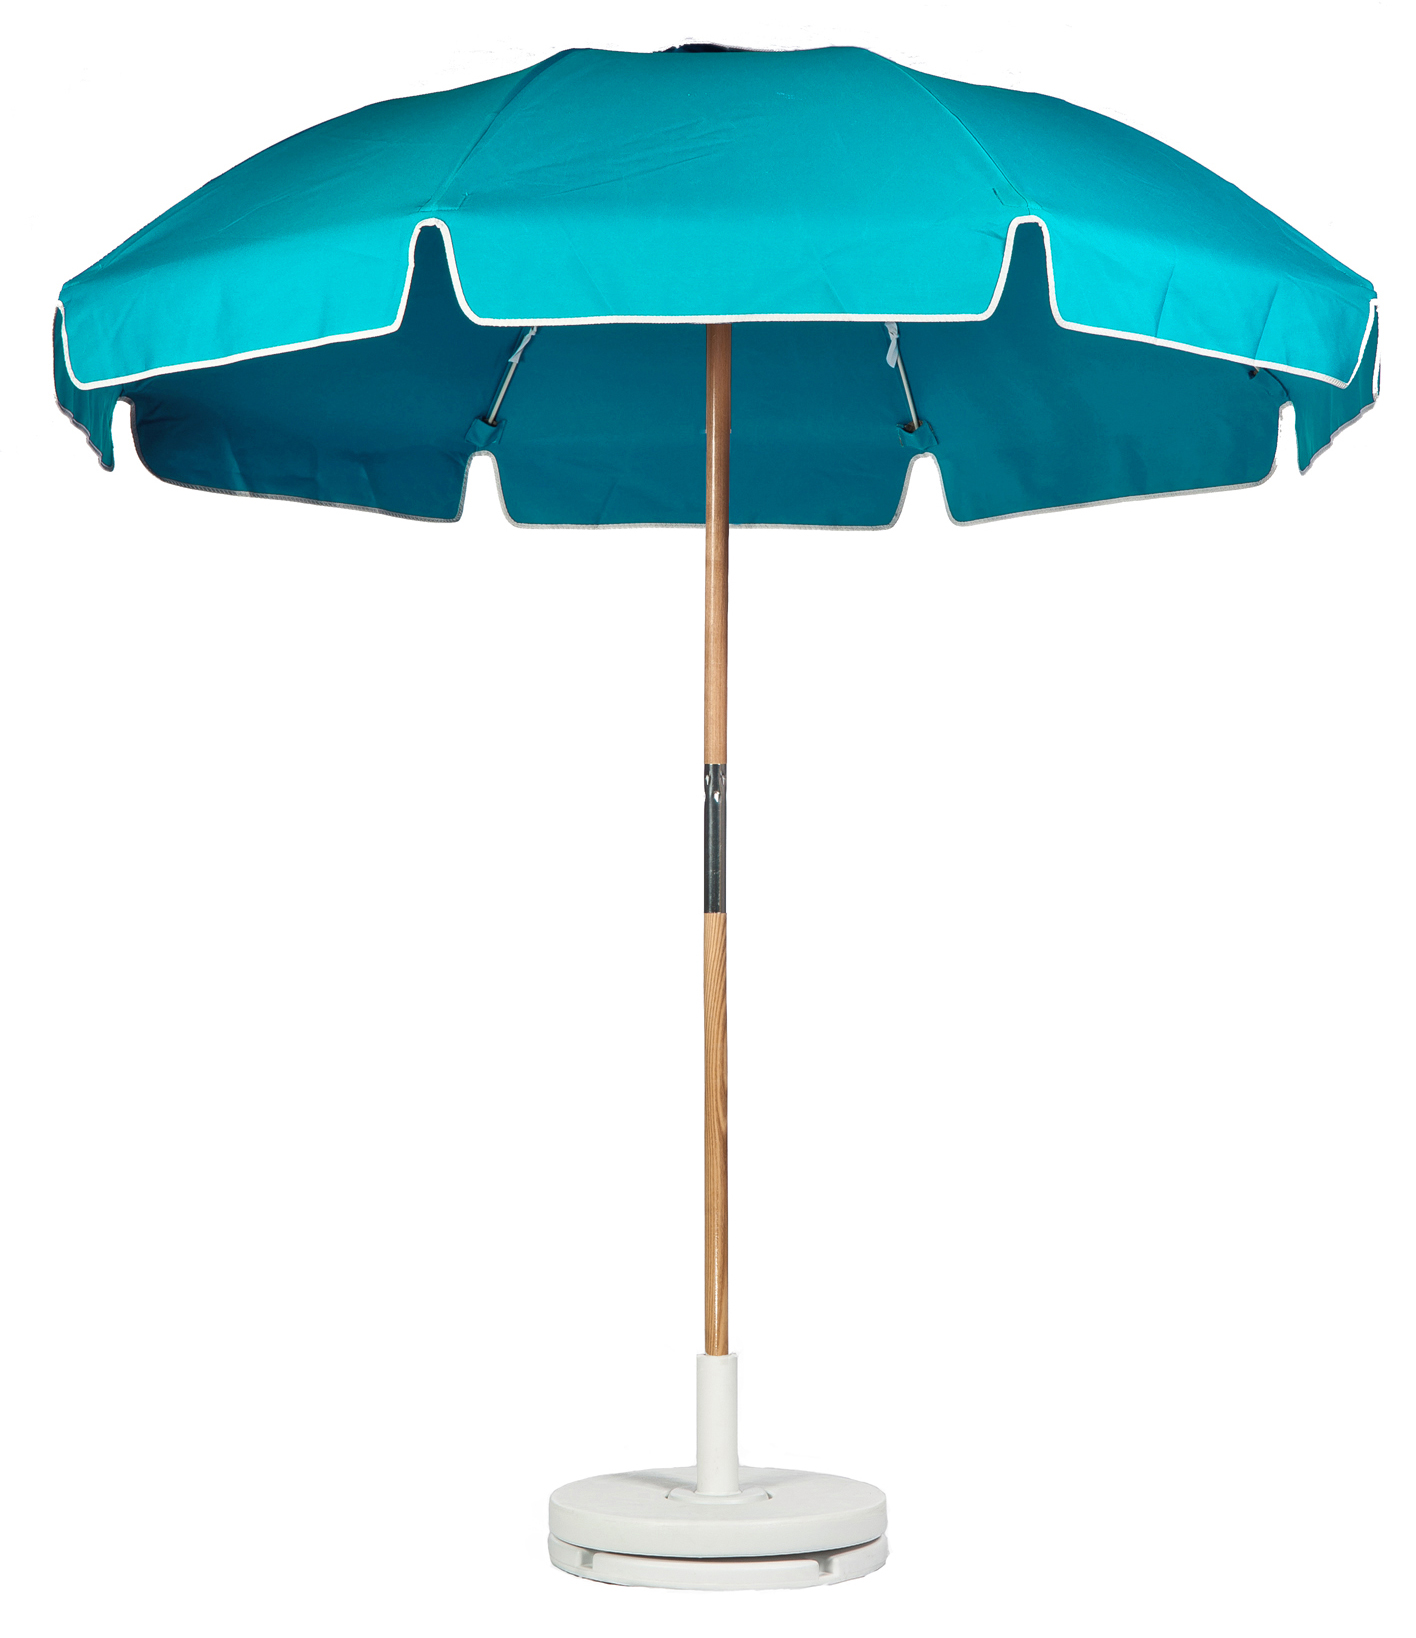 7.5′ BEACH UMBRELLA WITH FIBERGLASS SKELETON WITH VALANCE Stock Fabric:$189.00 Custom Fabric:$229.00